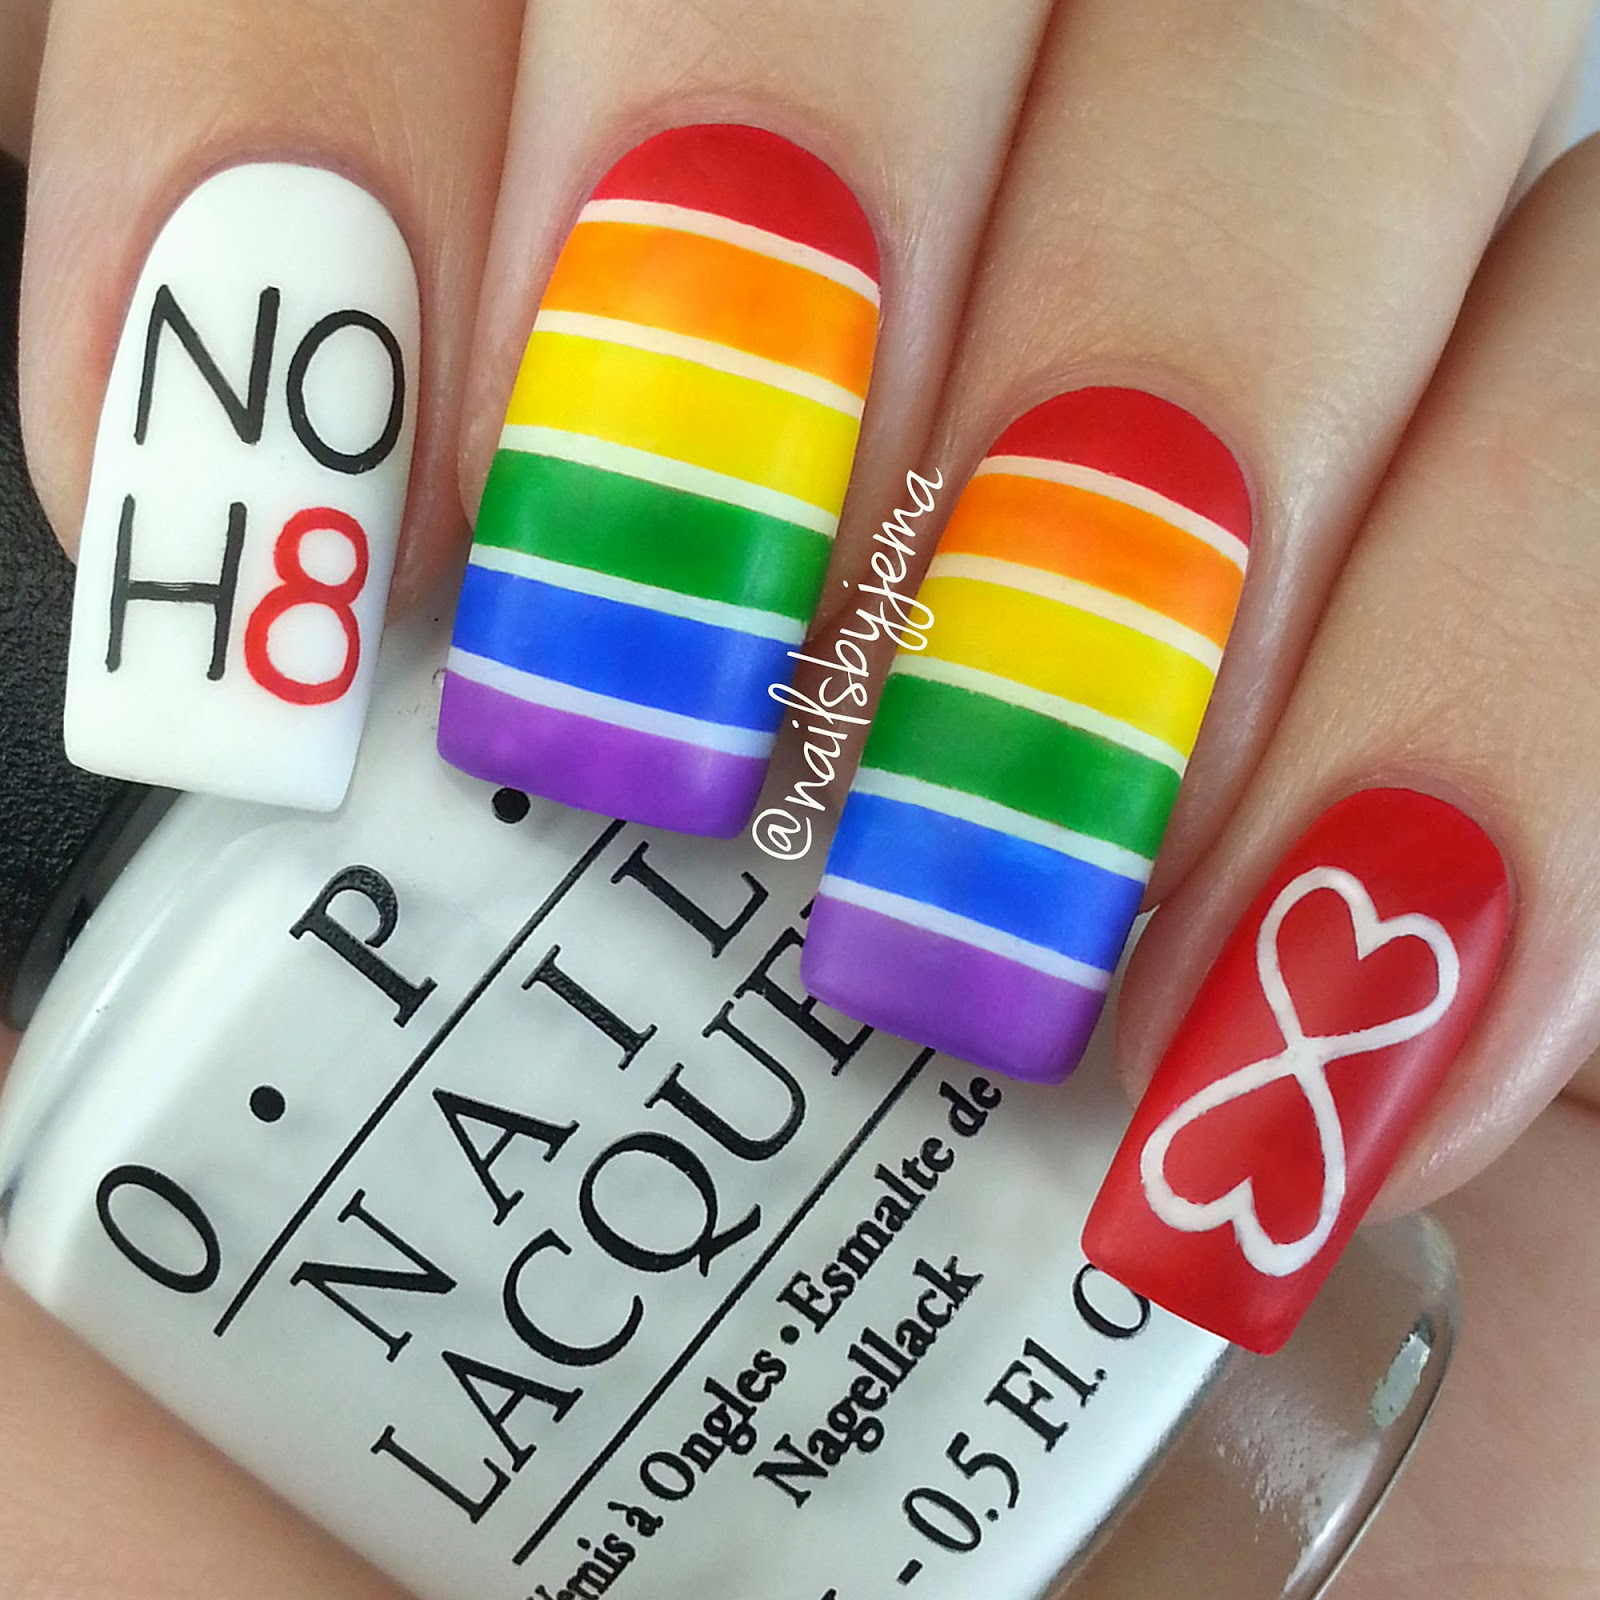 Rainbow Nail Designs To Celebrate Gay Marriage Ruling